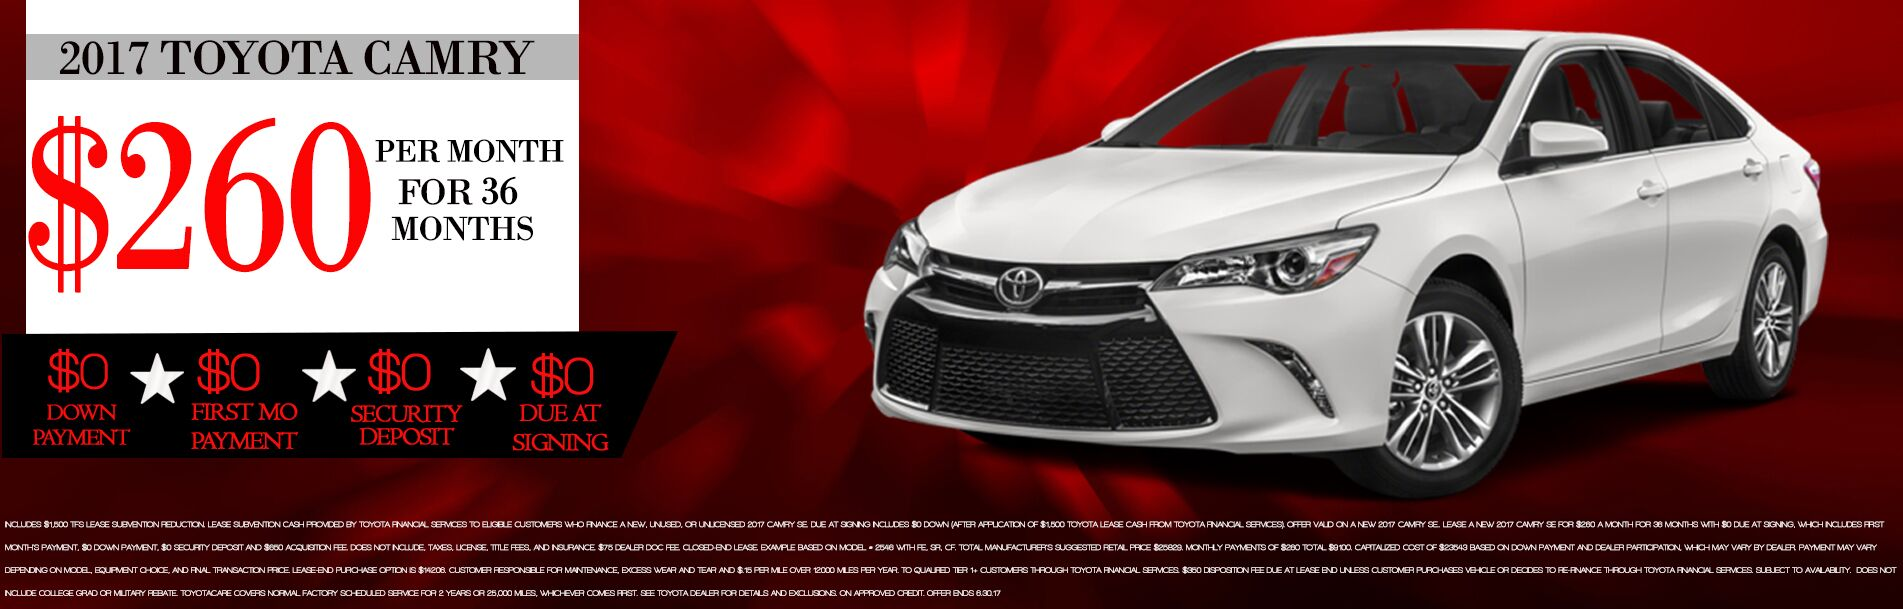 2017 Toyota Camry Lease Specials